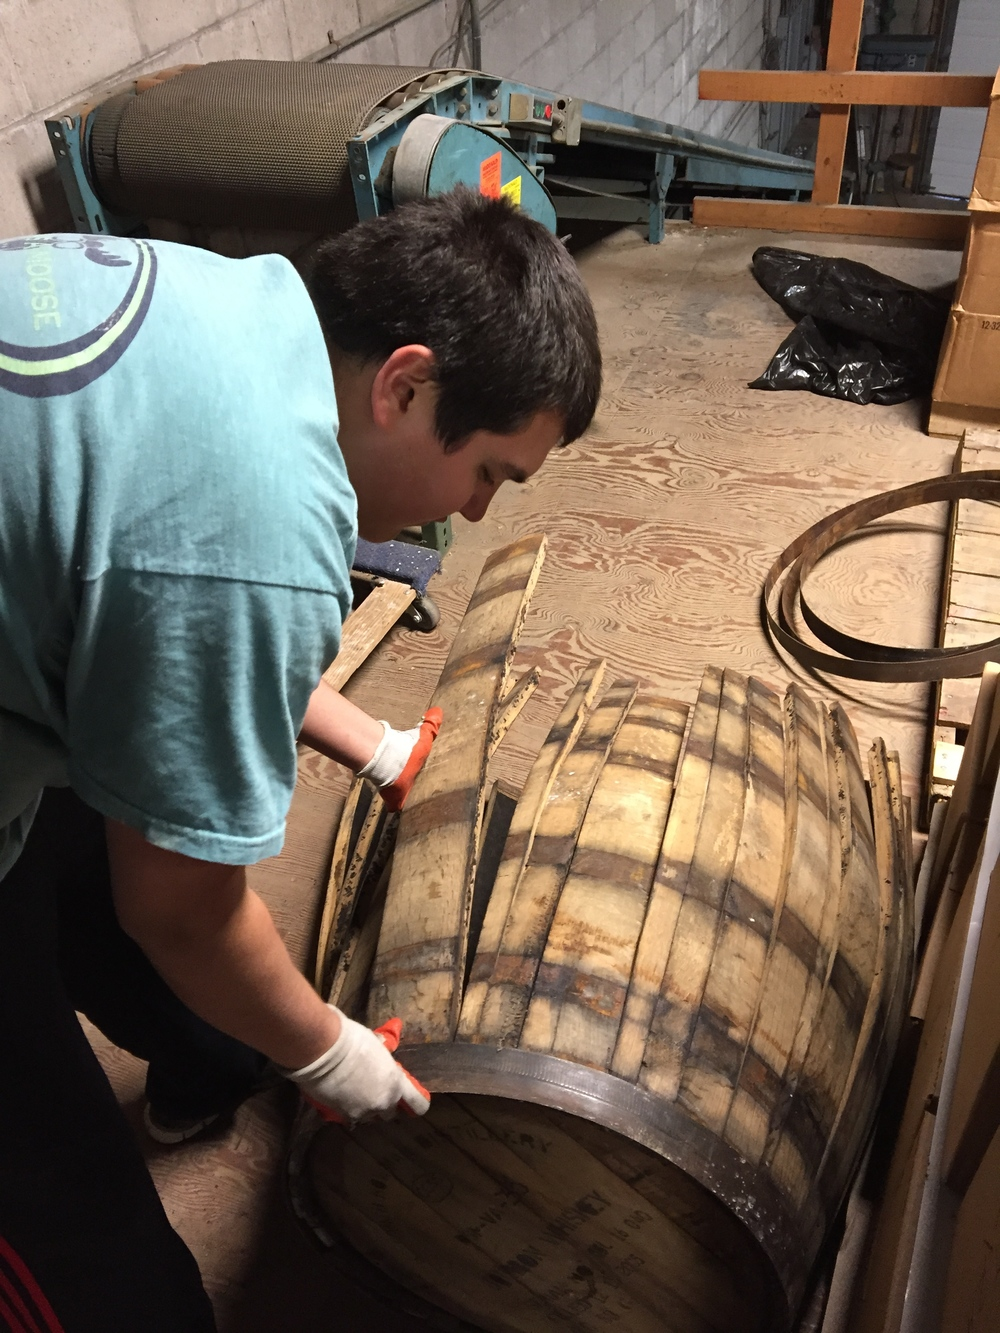 Nick breaks down the barrels, no tools required!